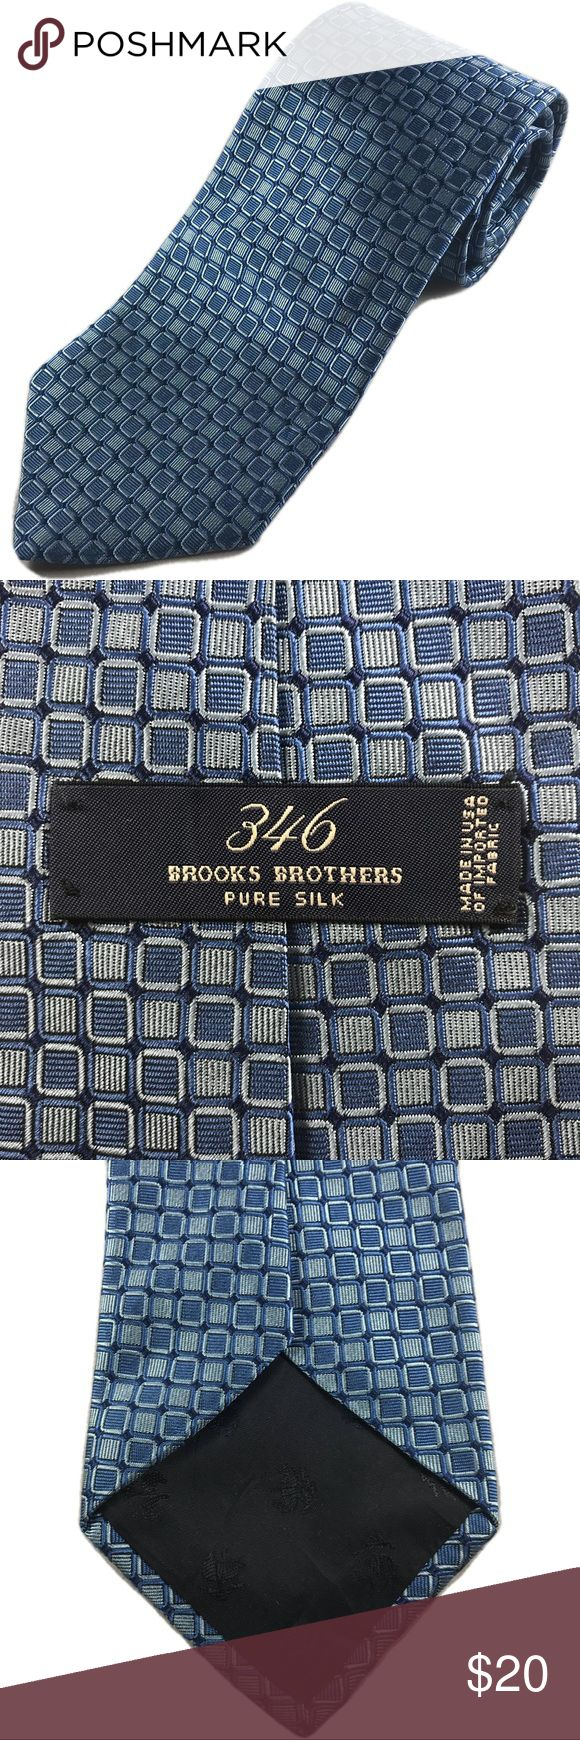 Brooks Brothers Men's 346 Neck Tie Men's Brooks Brothers Necktie made with 100% Silk.  This tie is Blue with a Squares pattern.  Width 3.75"